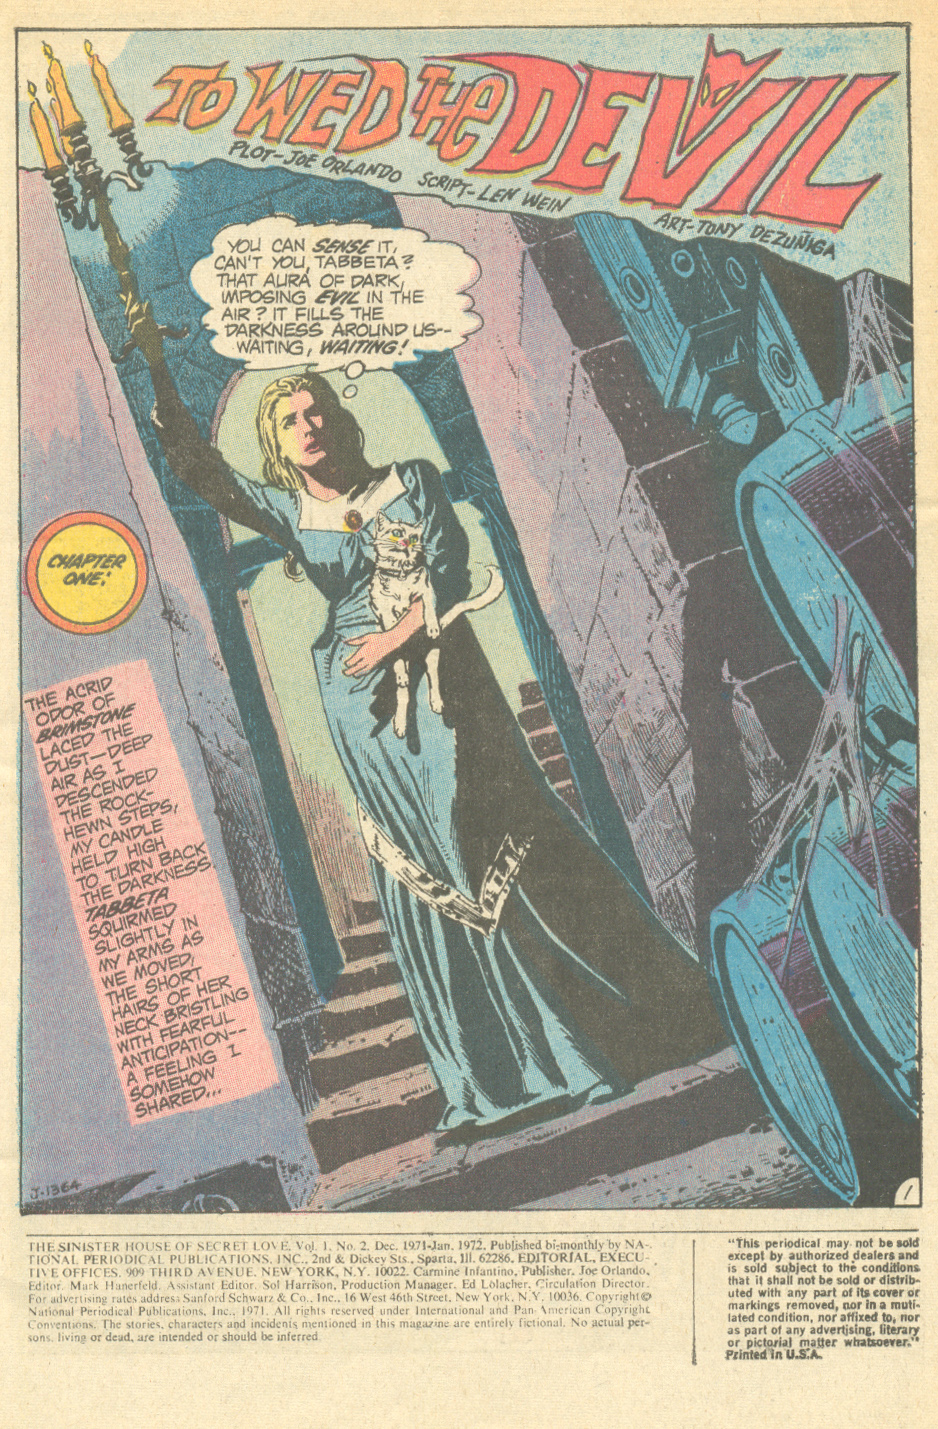 DC Comics The Sinister House of Secret Love Gothic romance comic book 1970s